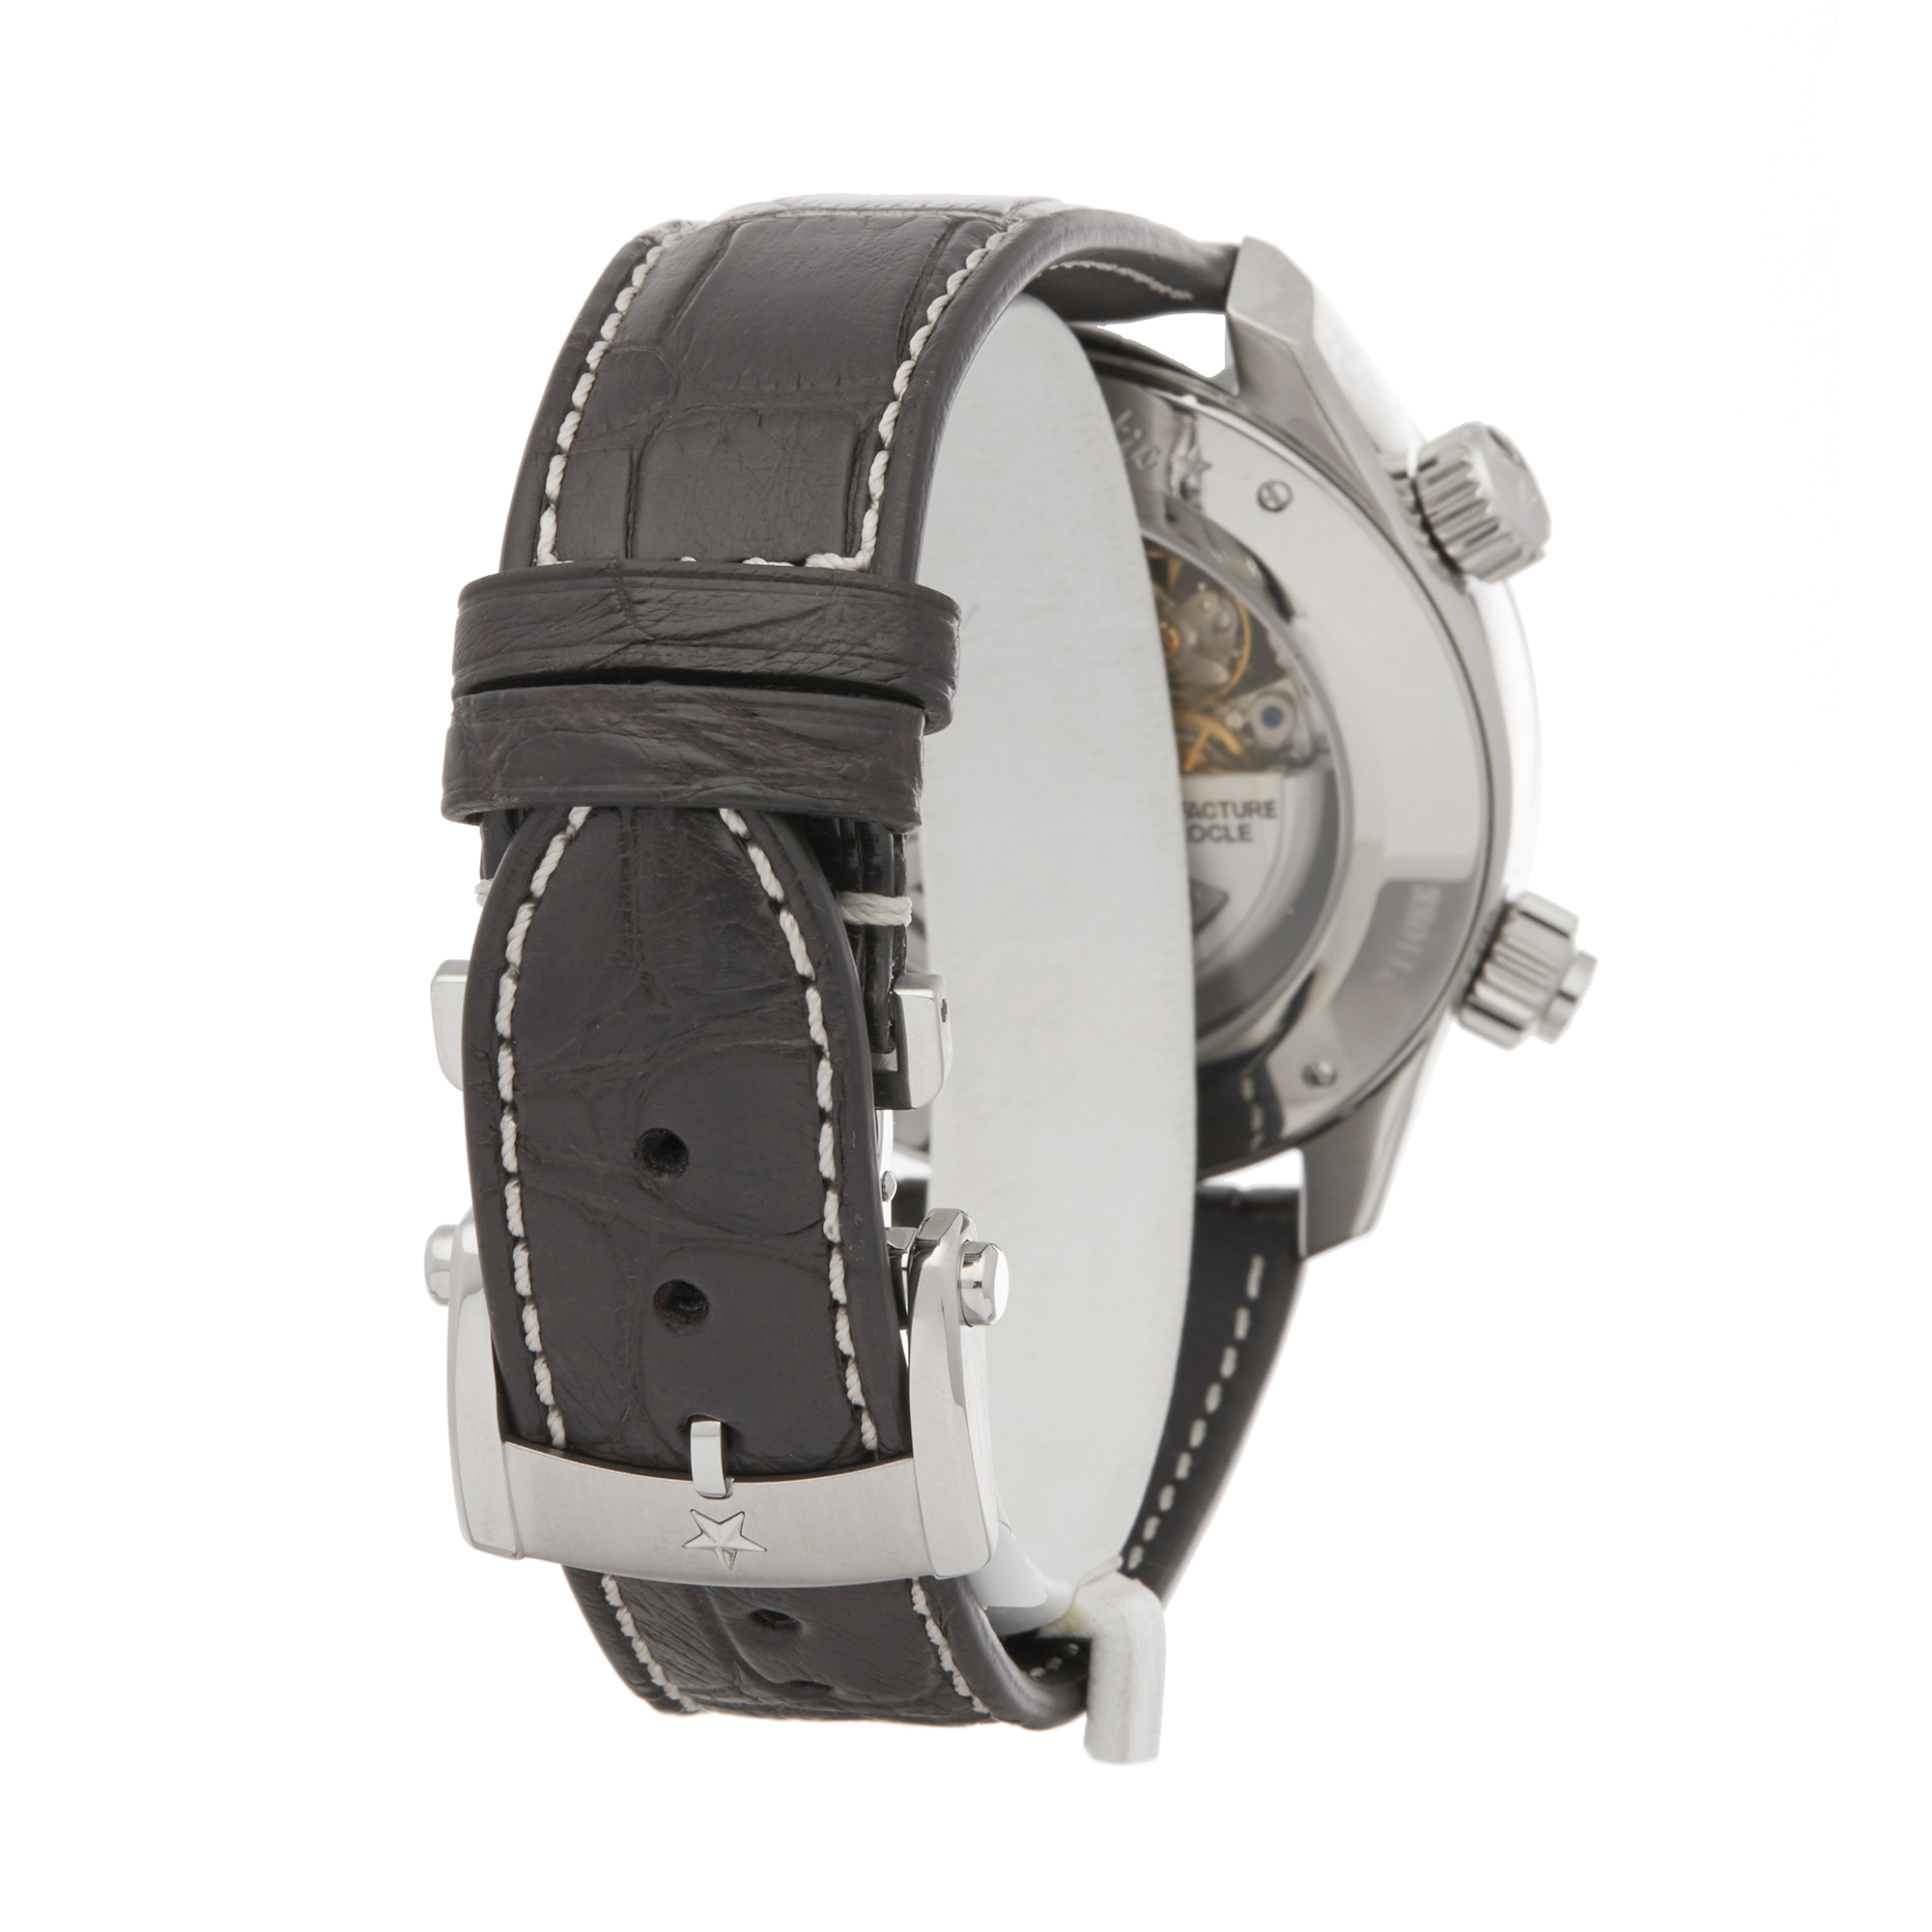 Zenith Doublematic 0 03.2400.4046/21.C721 Men Stainless Steel Chronograph Watch - Image 4 of 7